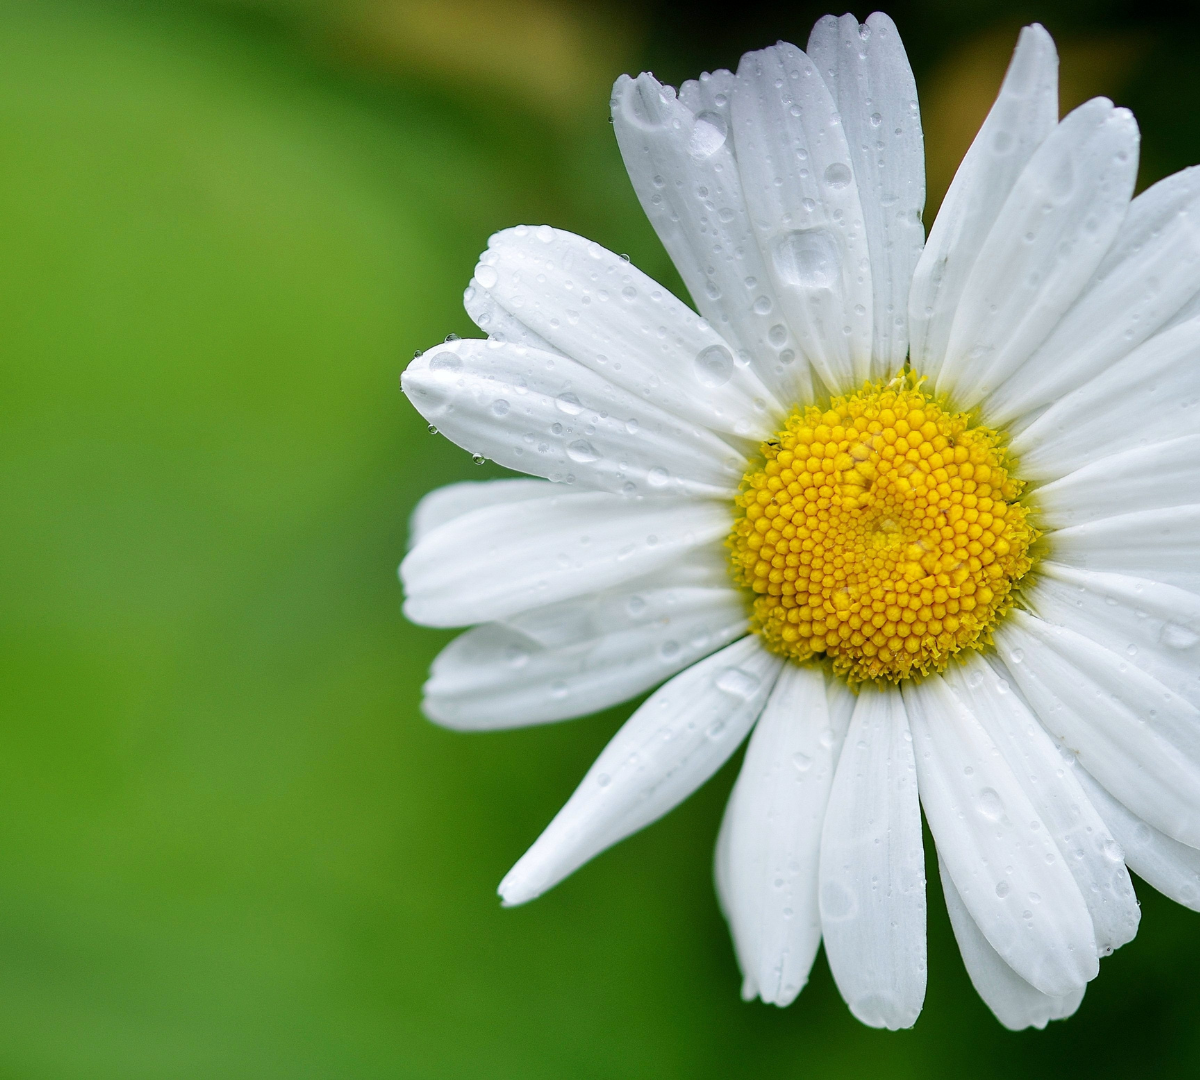 White Daisy with a green leaf in the background